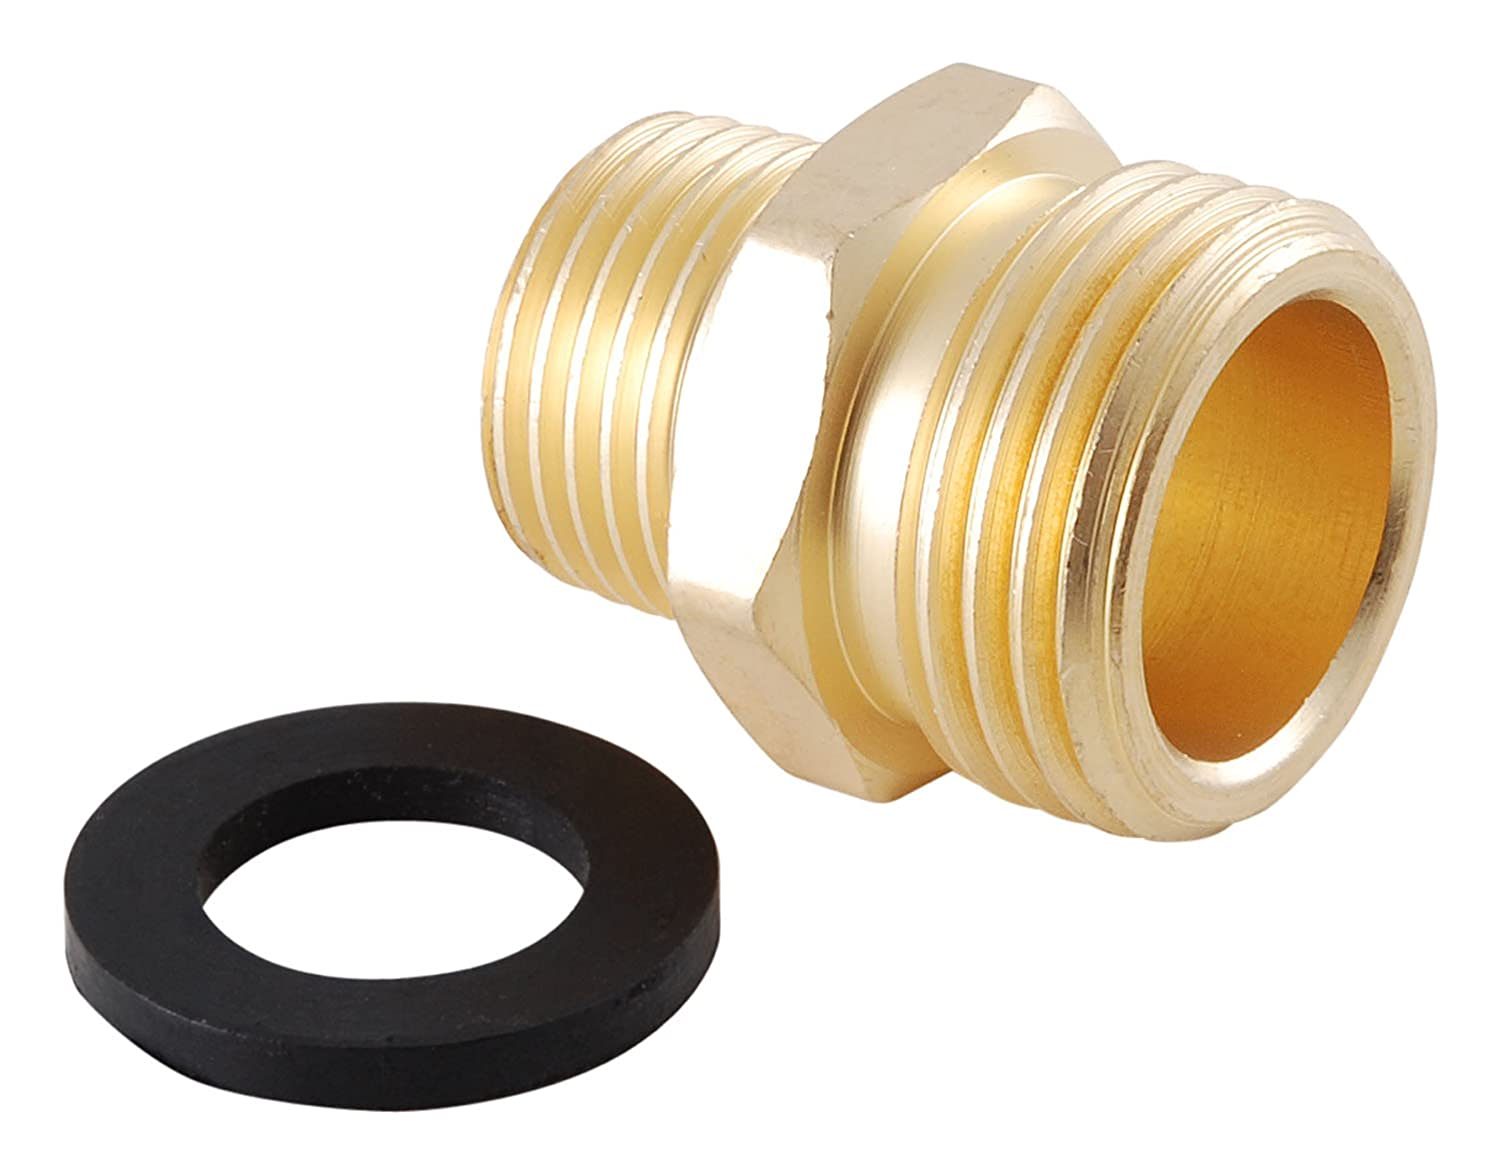 LDR 504 2120 3/4-Inch MHT by 1/2-Inch MIP Male Hose Fitting